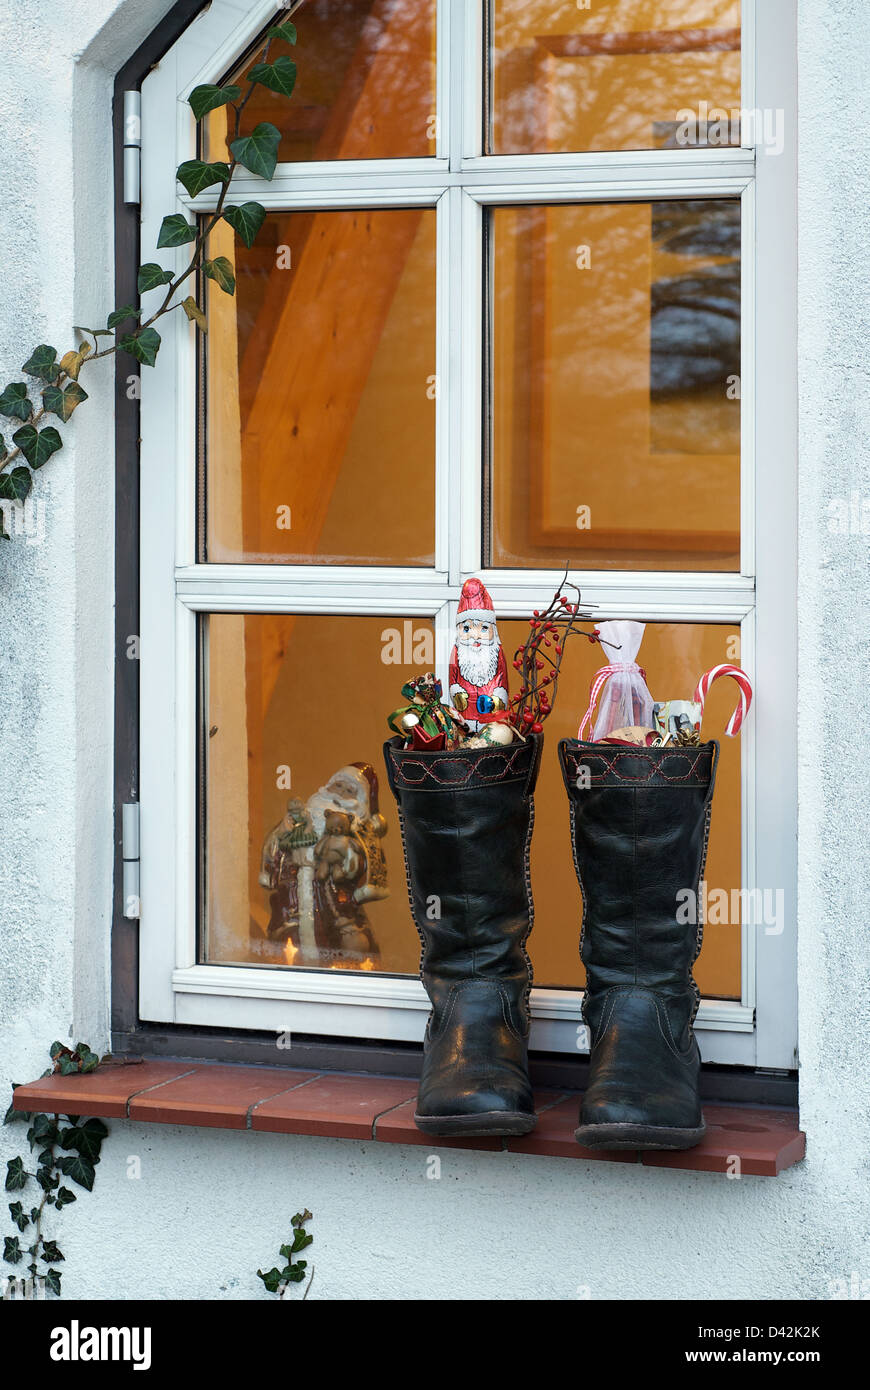 2019 year lifestyle- St. boot day Nicholas pictures